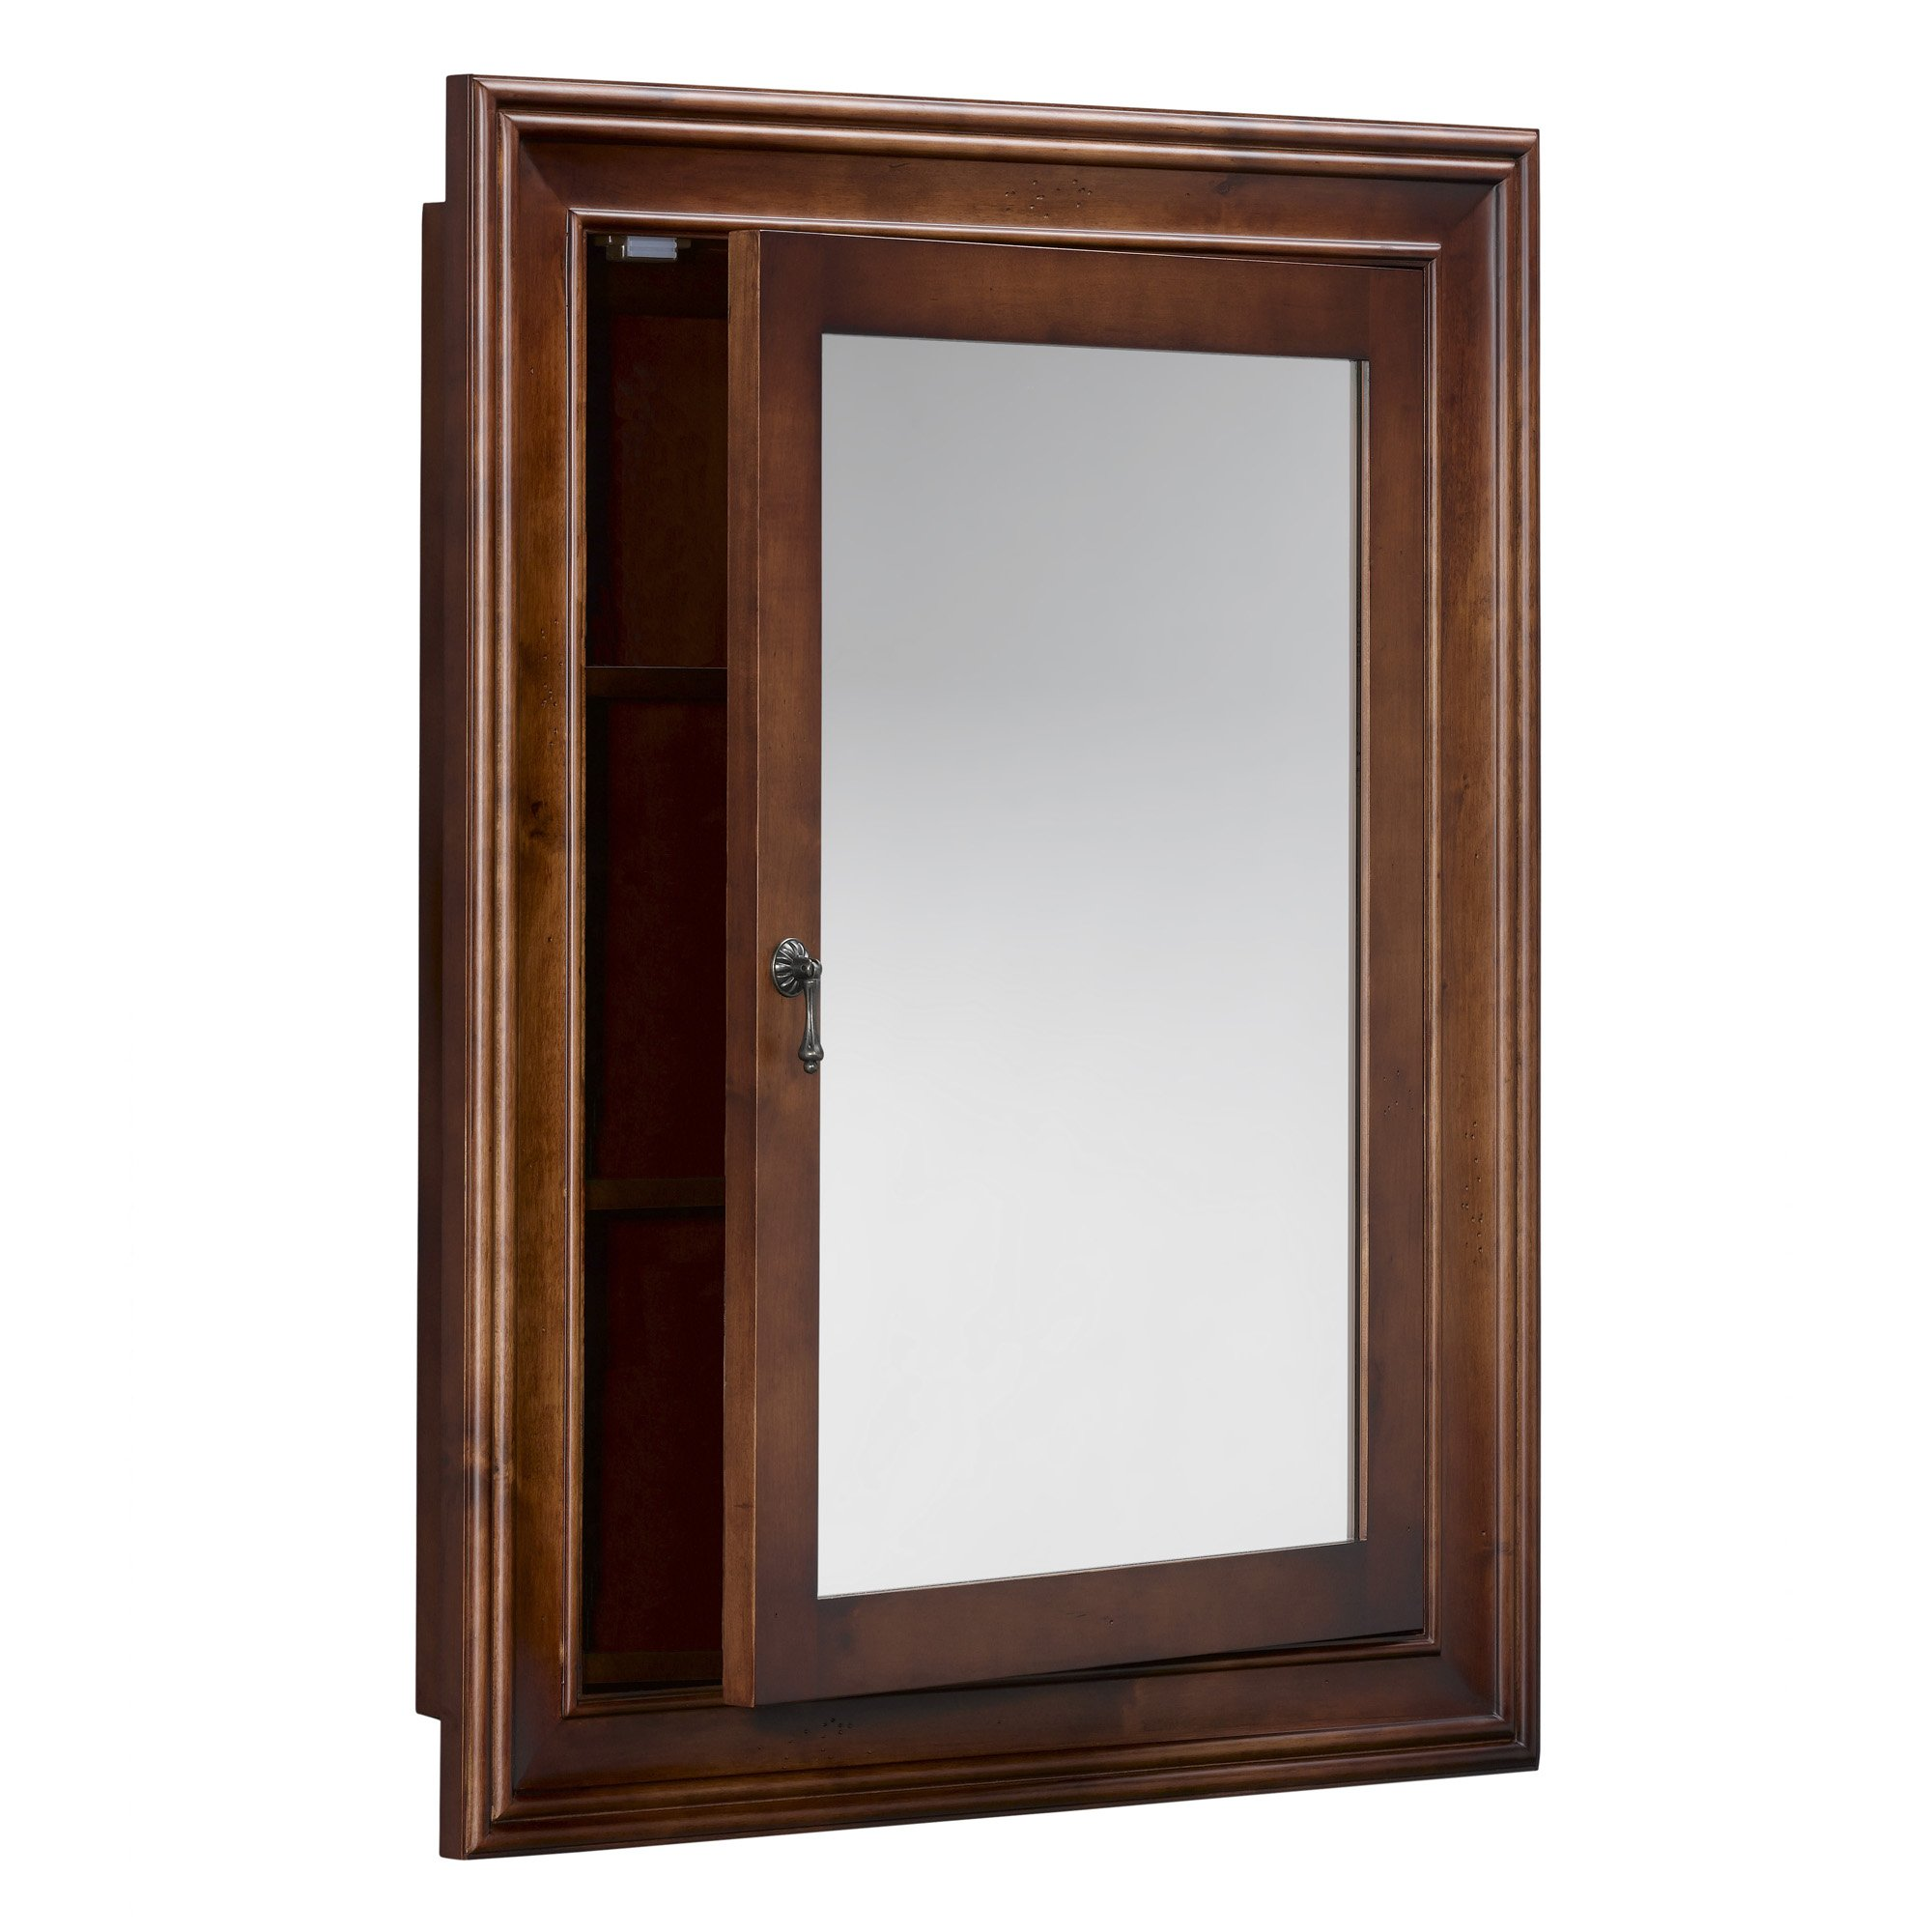 RONBOW Henry 27'' x 34'' Traditional Solid Wood Frame Bathroom Medicine Cabinet with 2 Mirrors and 2 Cabinet Shelves in Colonial Cherry 611027-F11 by Ronbow